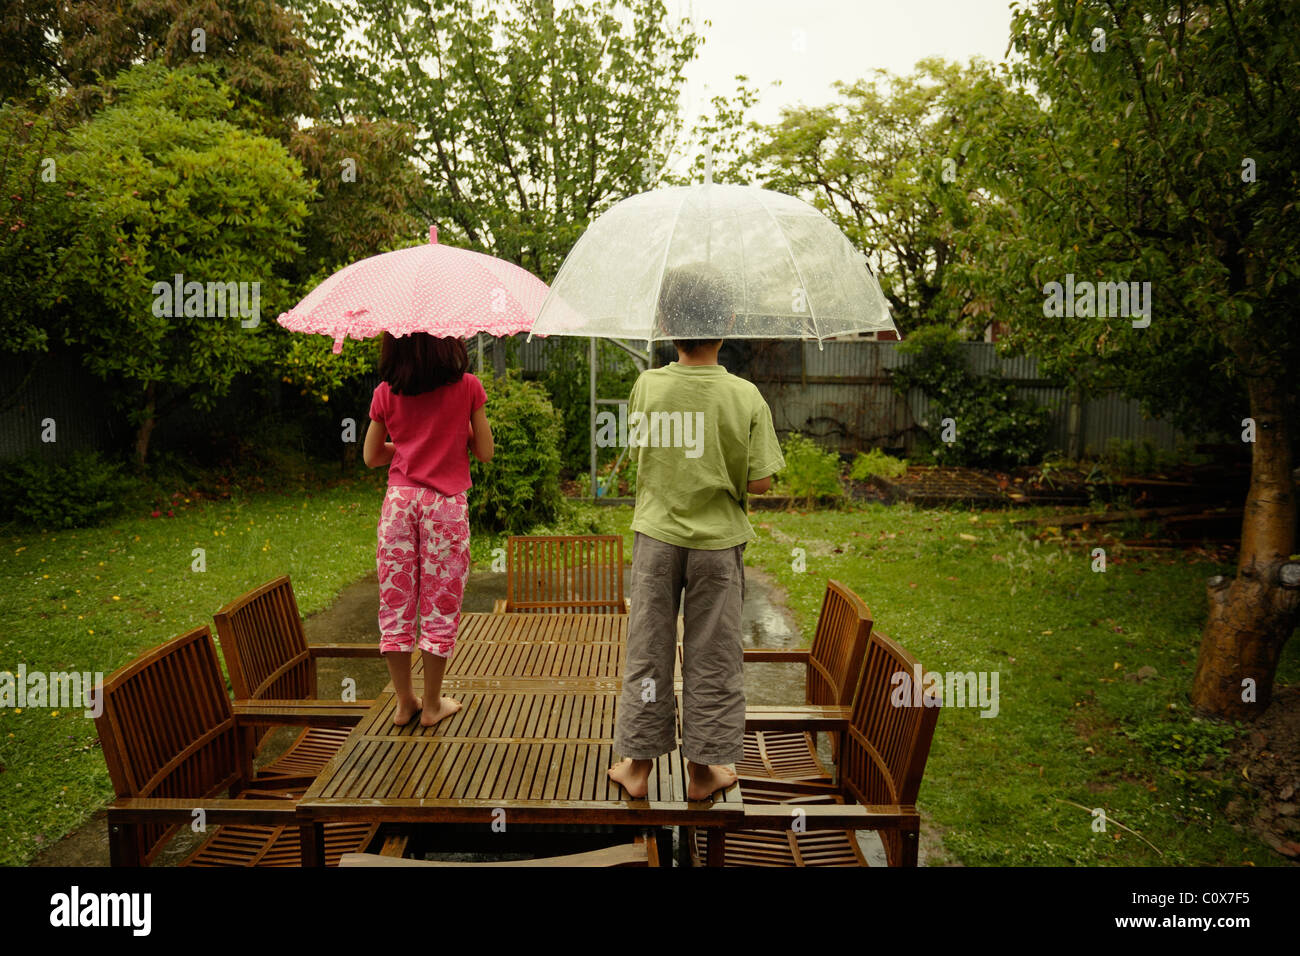 Boy and girl stand on table in garden watching the rain on a weekend. - Stock Image